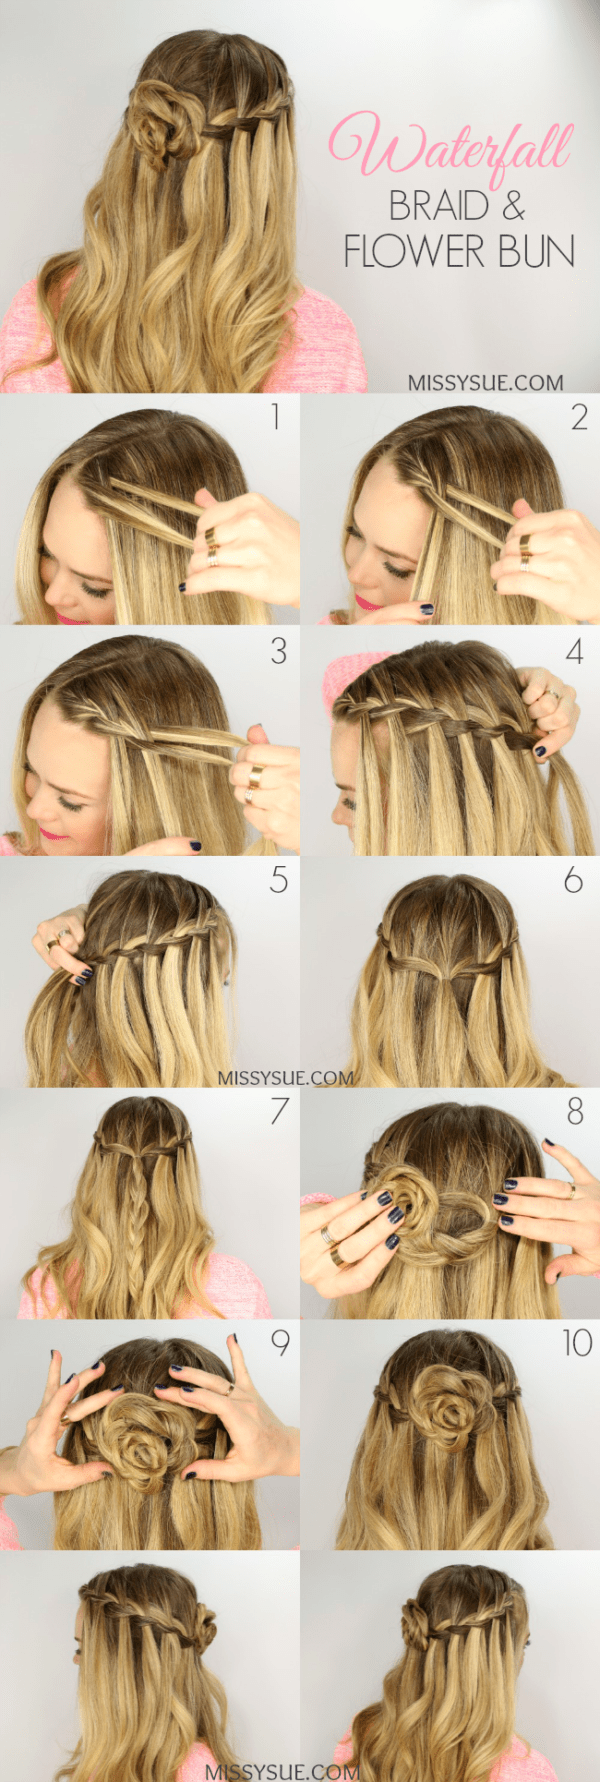 Simply Hairstyle Tutorials For Your Next Going Out